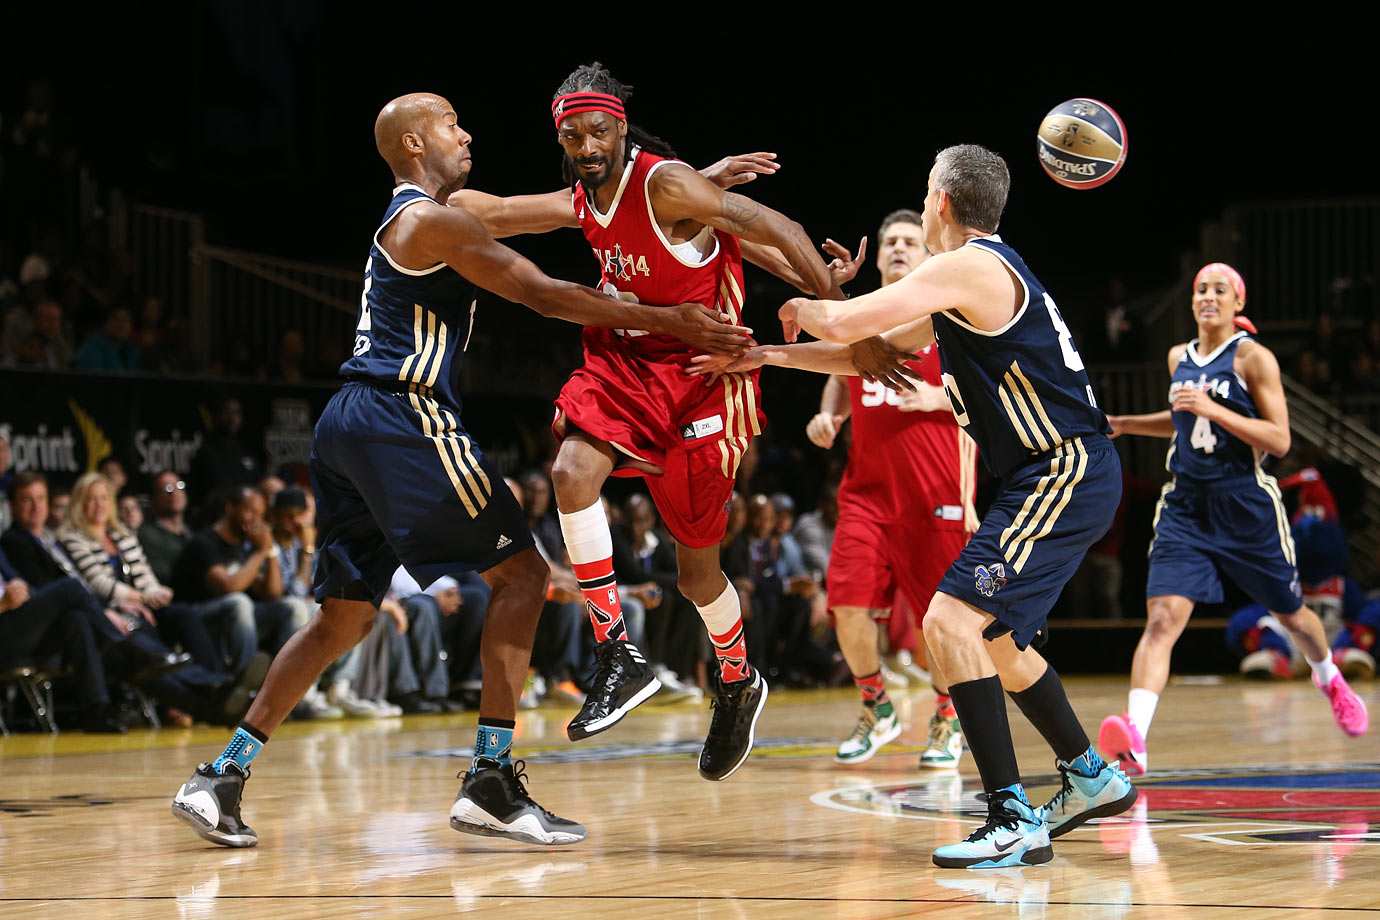 Snoop Dogg of the West Team passes against NBA Legend Bruce Bowen of the East Team during the Sprint NBA All-Star Celebrity Game on Feb. 14, 2014 at Sprint Arena in New Orleans.